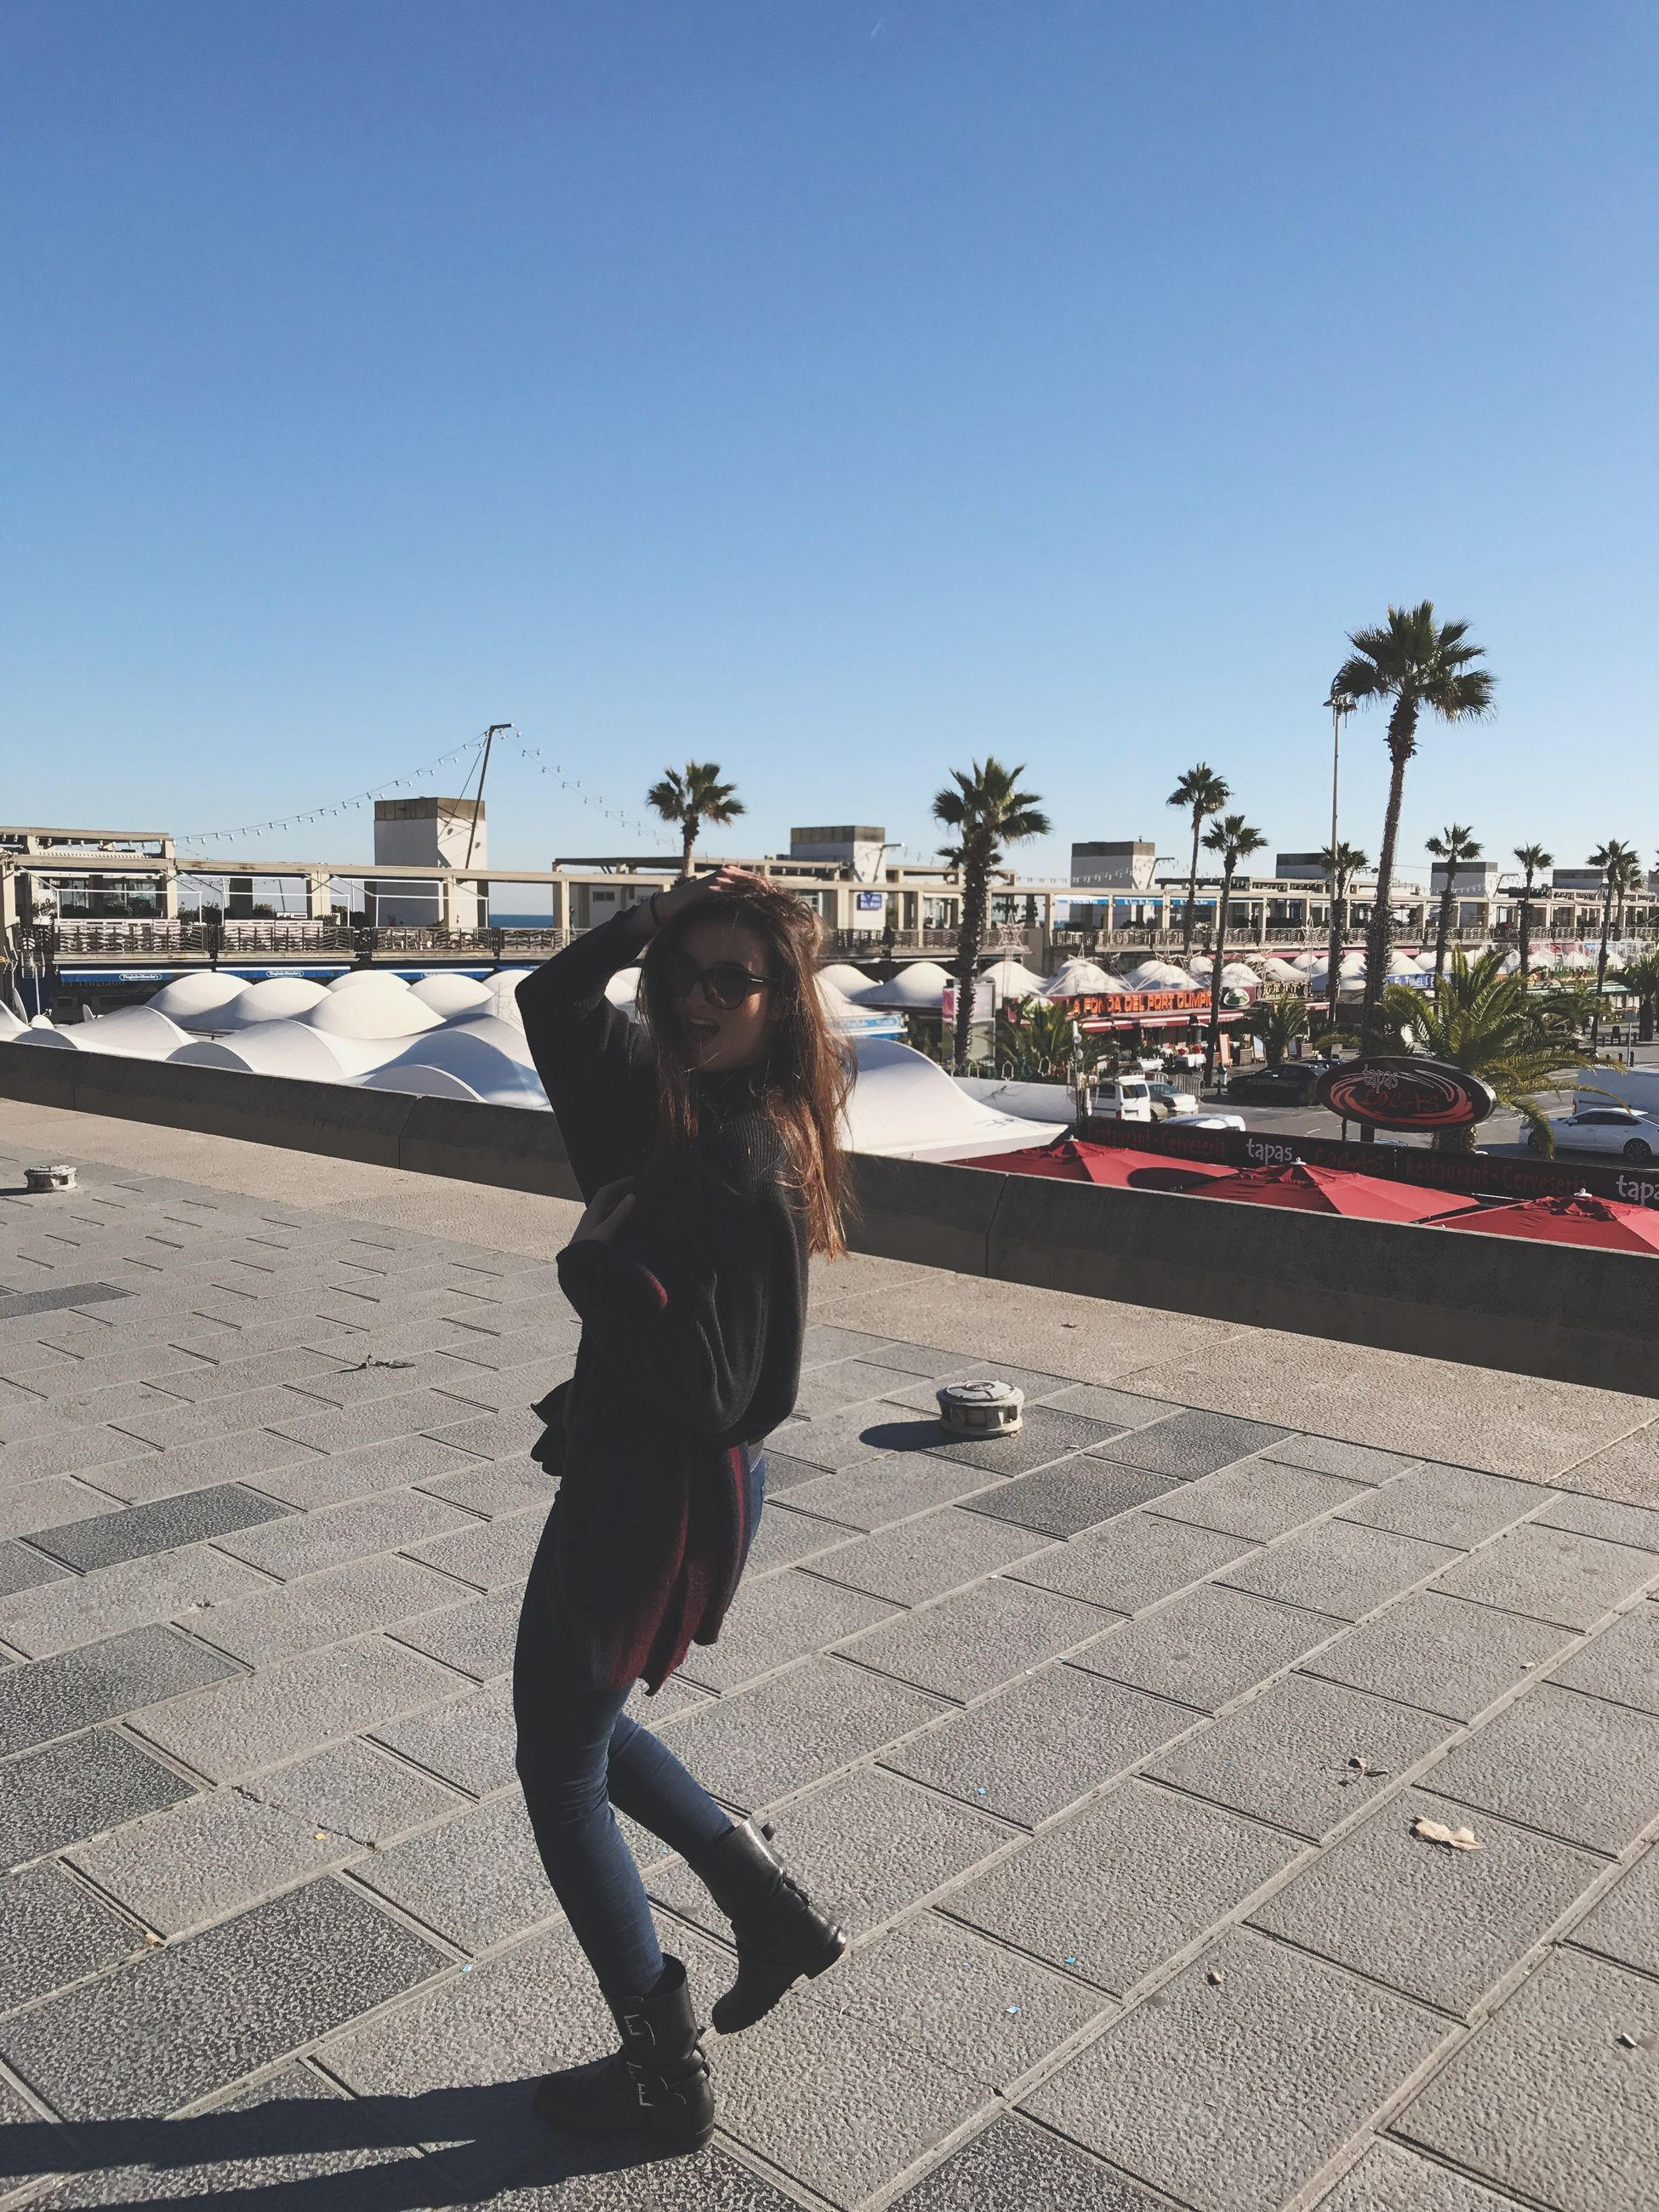 real people, clear sky, outdoors, one person, sunlight, sky, leisure activity, day, full length, lifestyles, built structure, women, childhood, vacations, architecture, people, adult, adults only